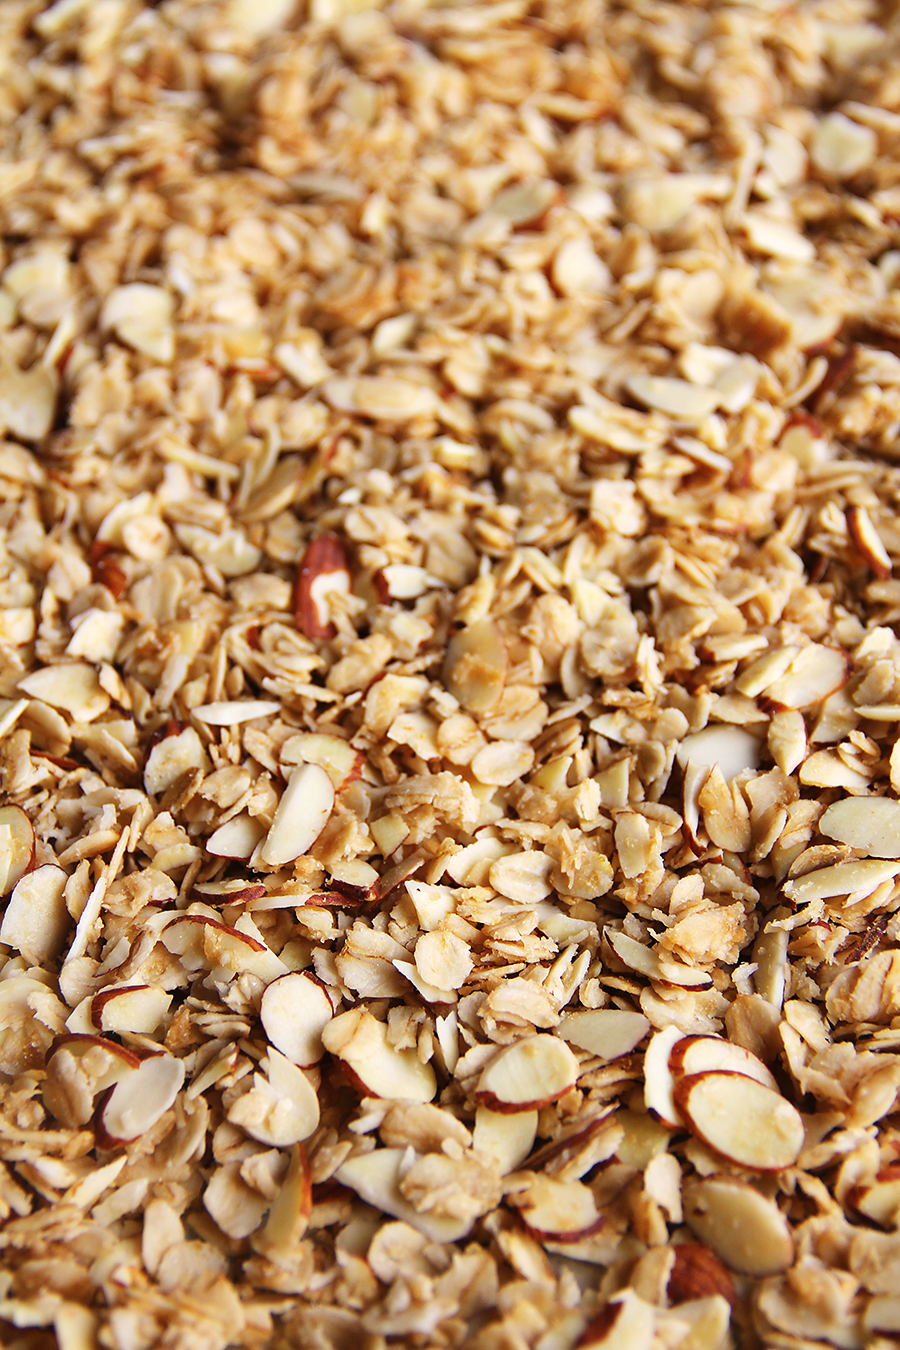 granola upclose vertical